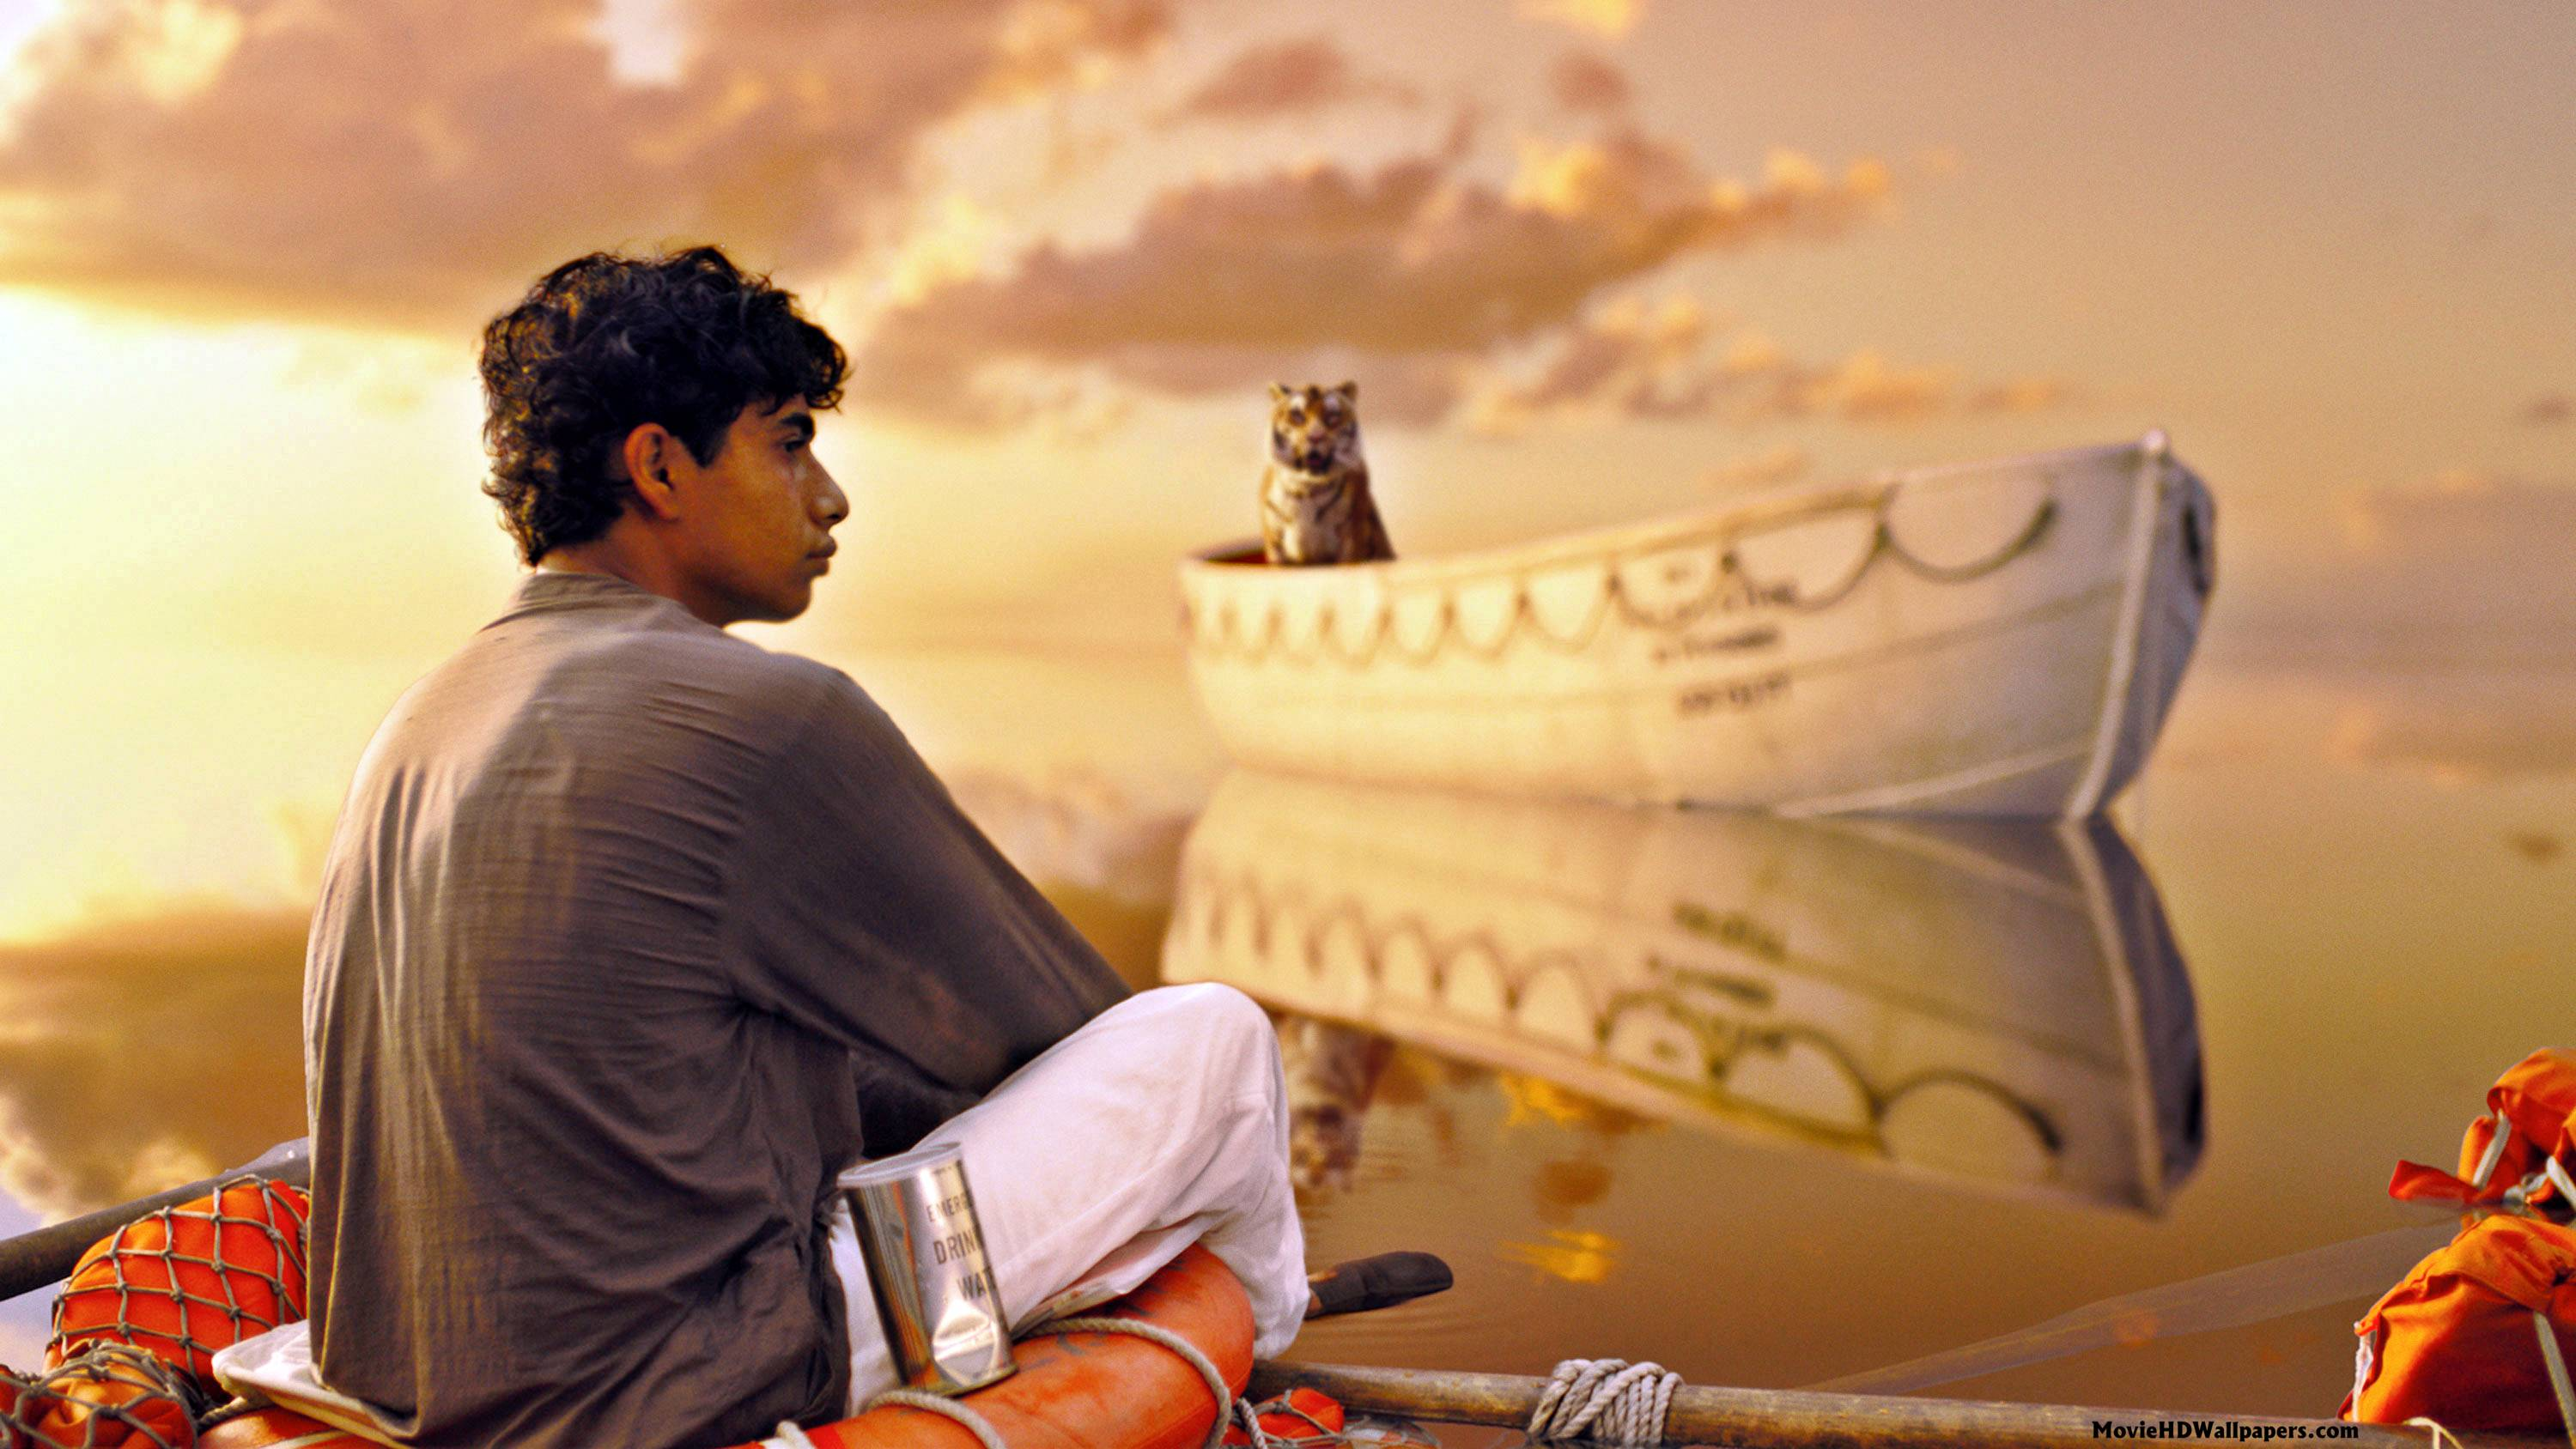 Life of pi 2012 movie hd wallpapers for Piscine molitor life of pi